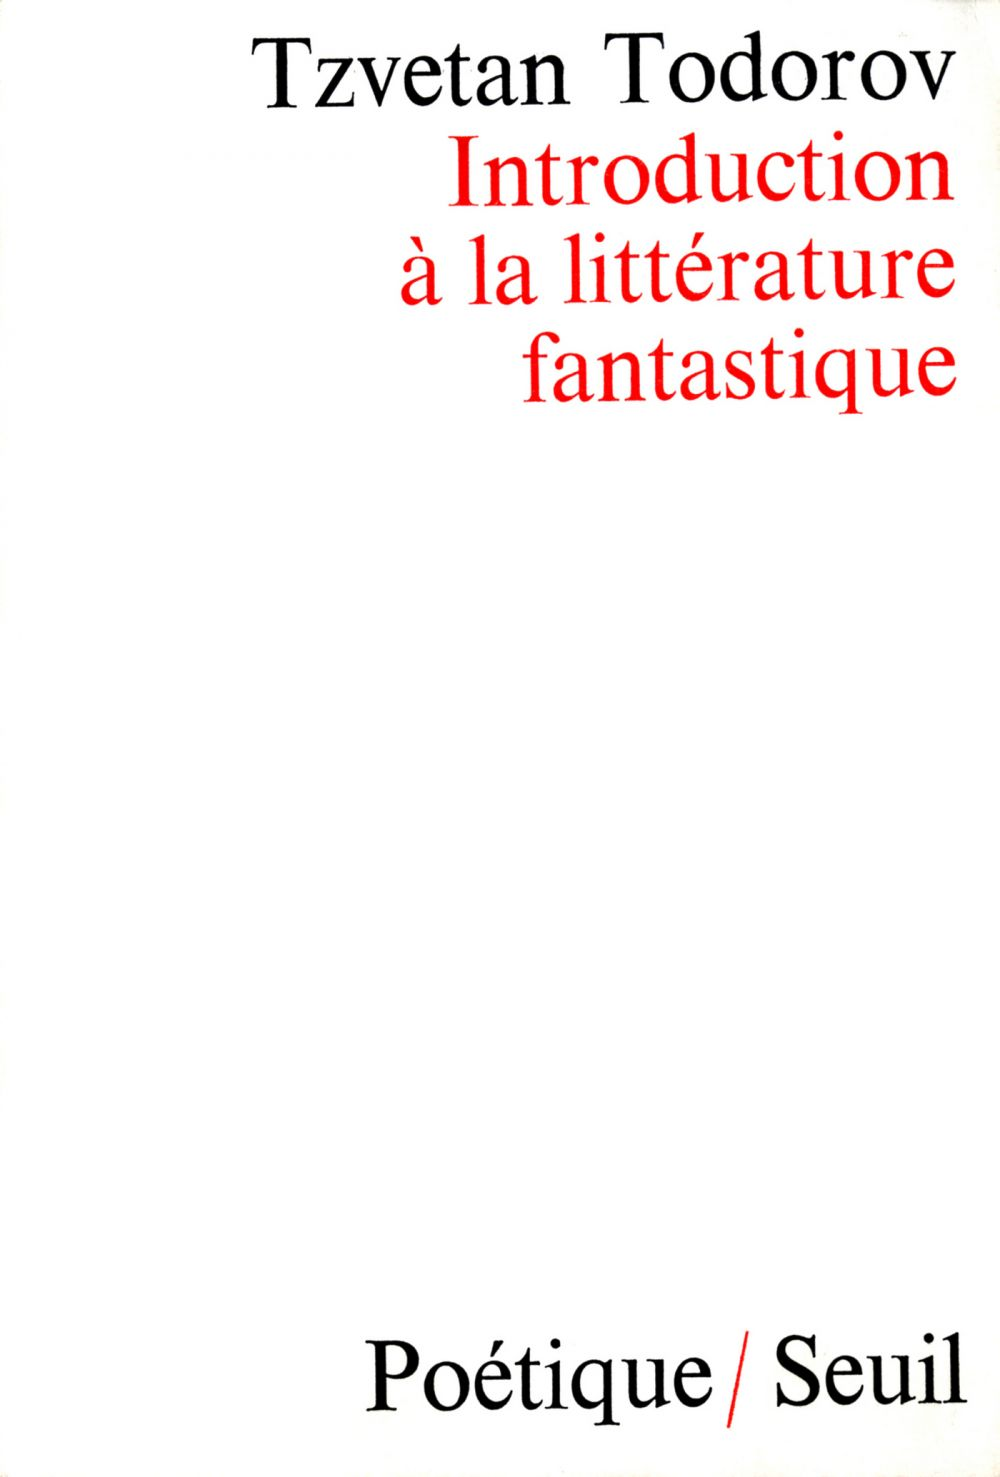 Introduction à la littérature fantastique